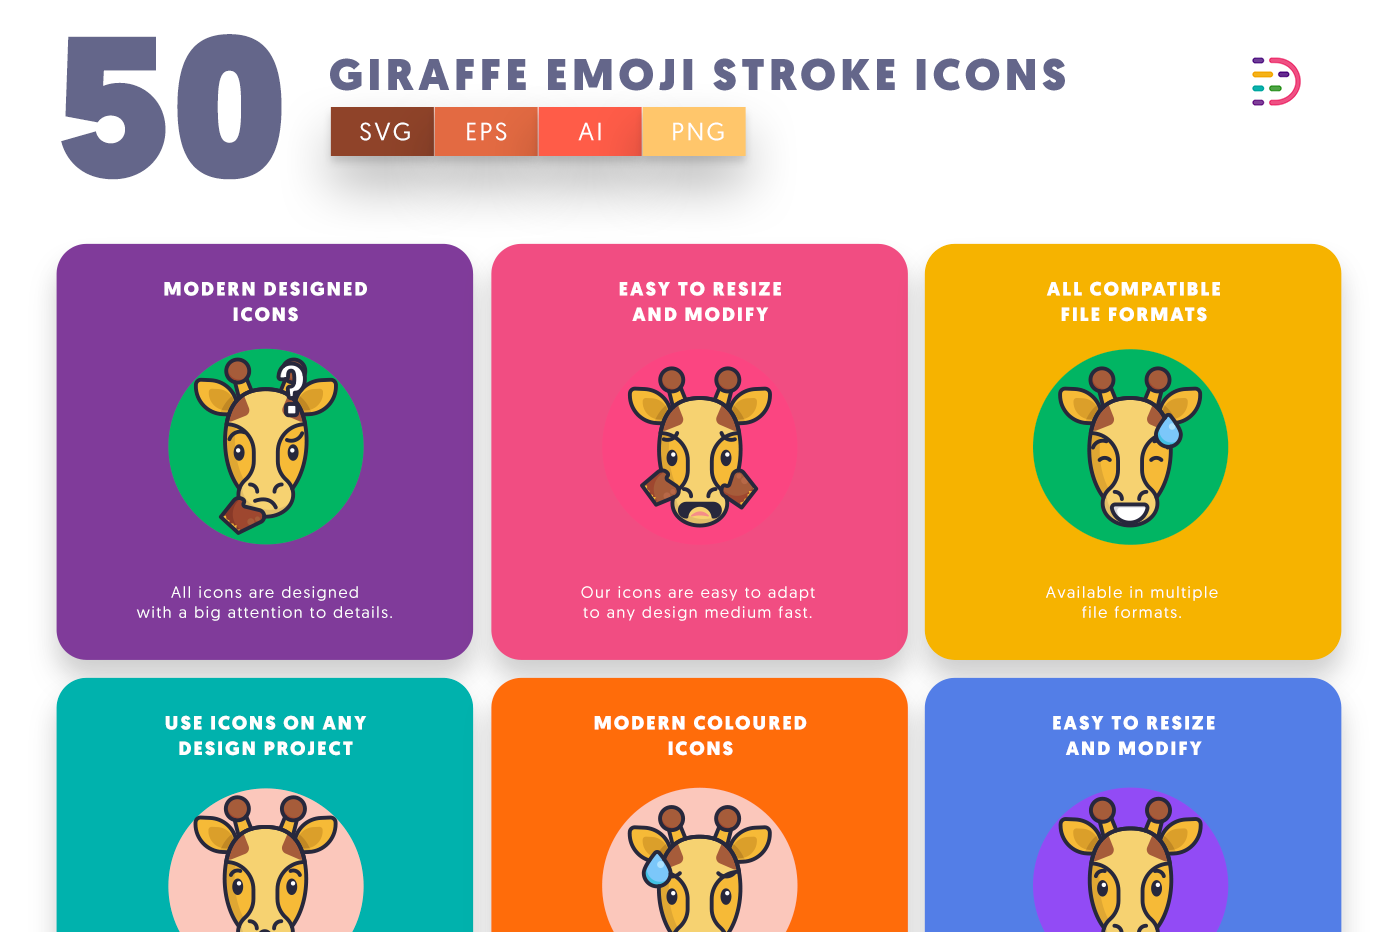 50 Giraffe Emoji Stroke Icons with colored backgrounds